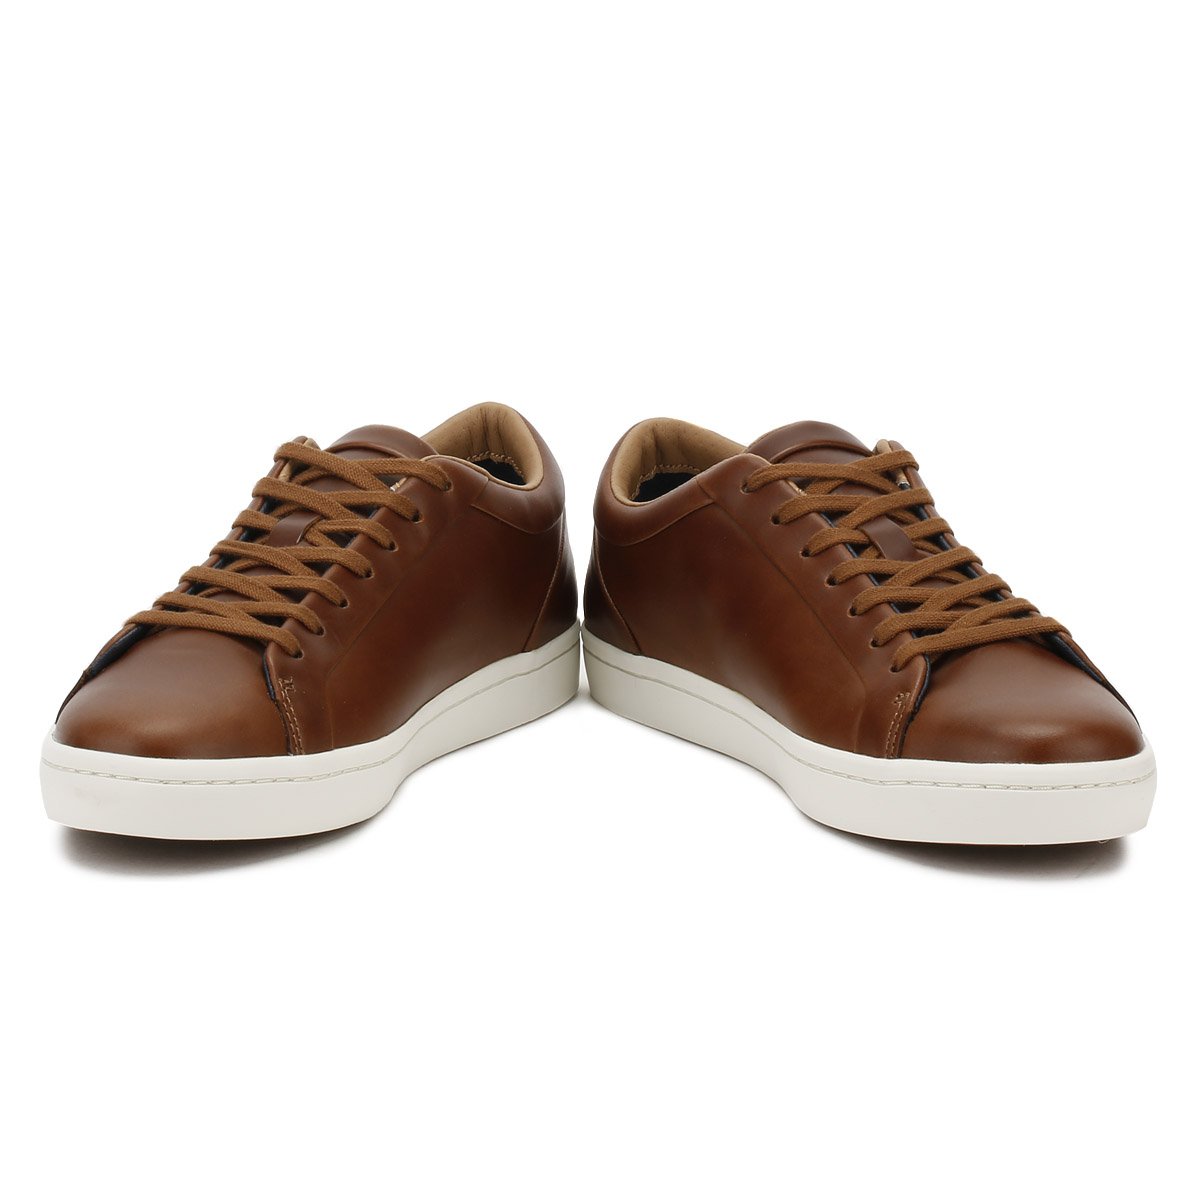 348ef3100e31 Lacoste Mens Brown Straightset 317 Trainers